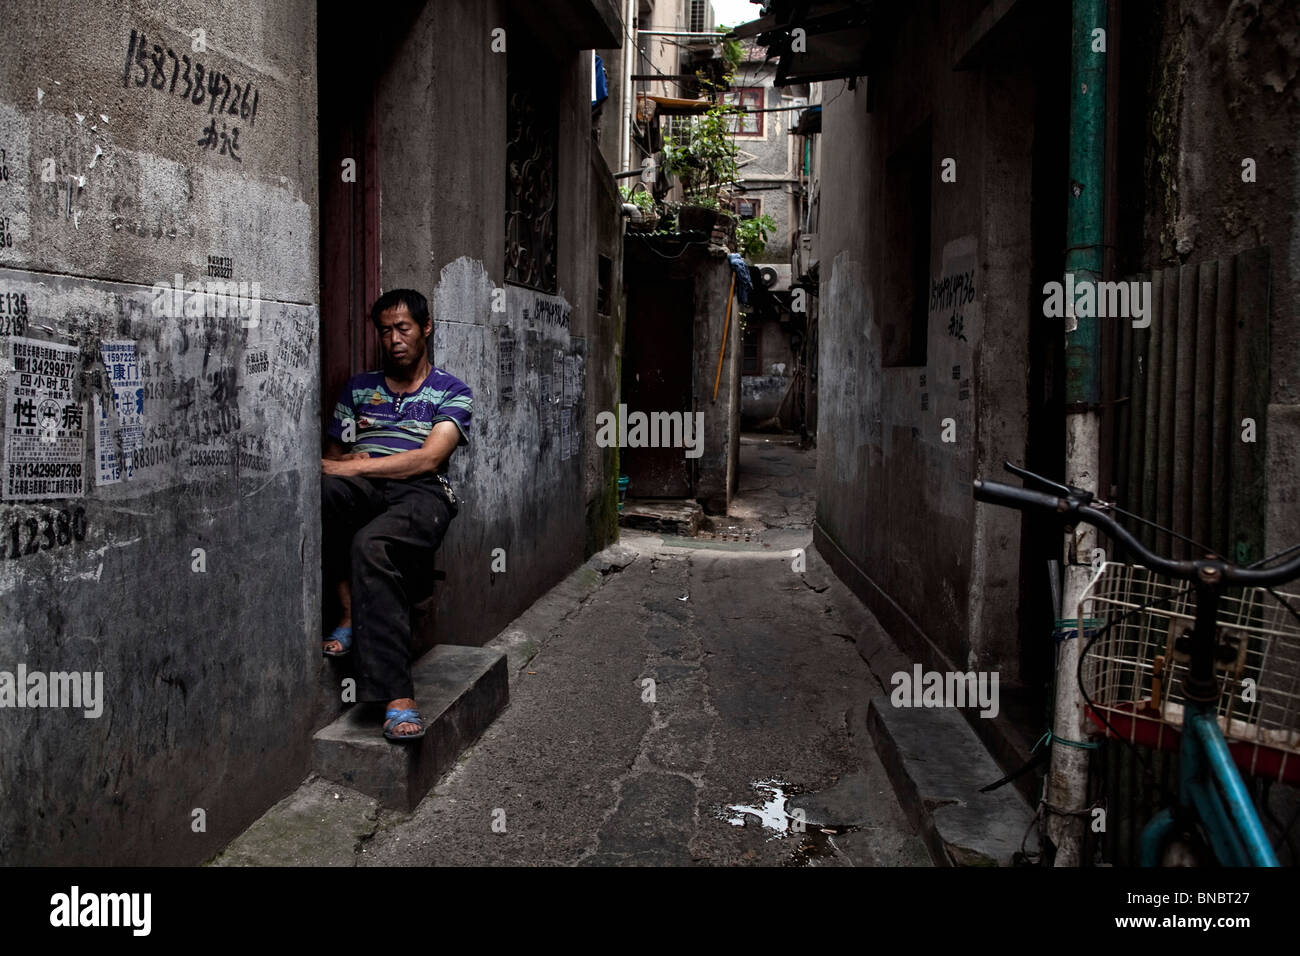 A cobbler waits for customers in an old neighbourhood in the Puxi area of Shanghai - Stock Image